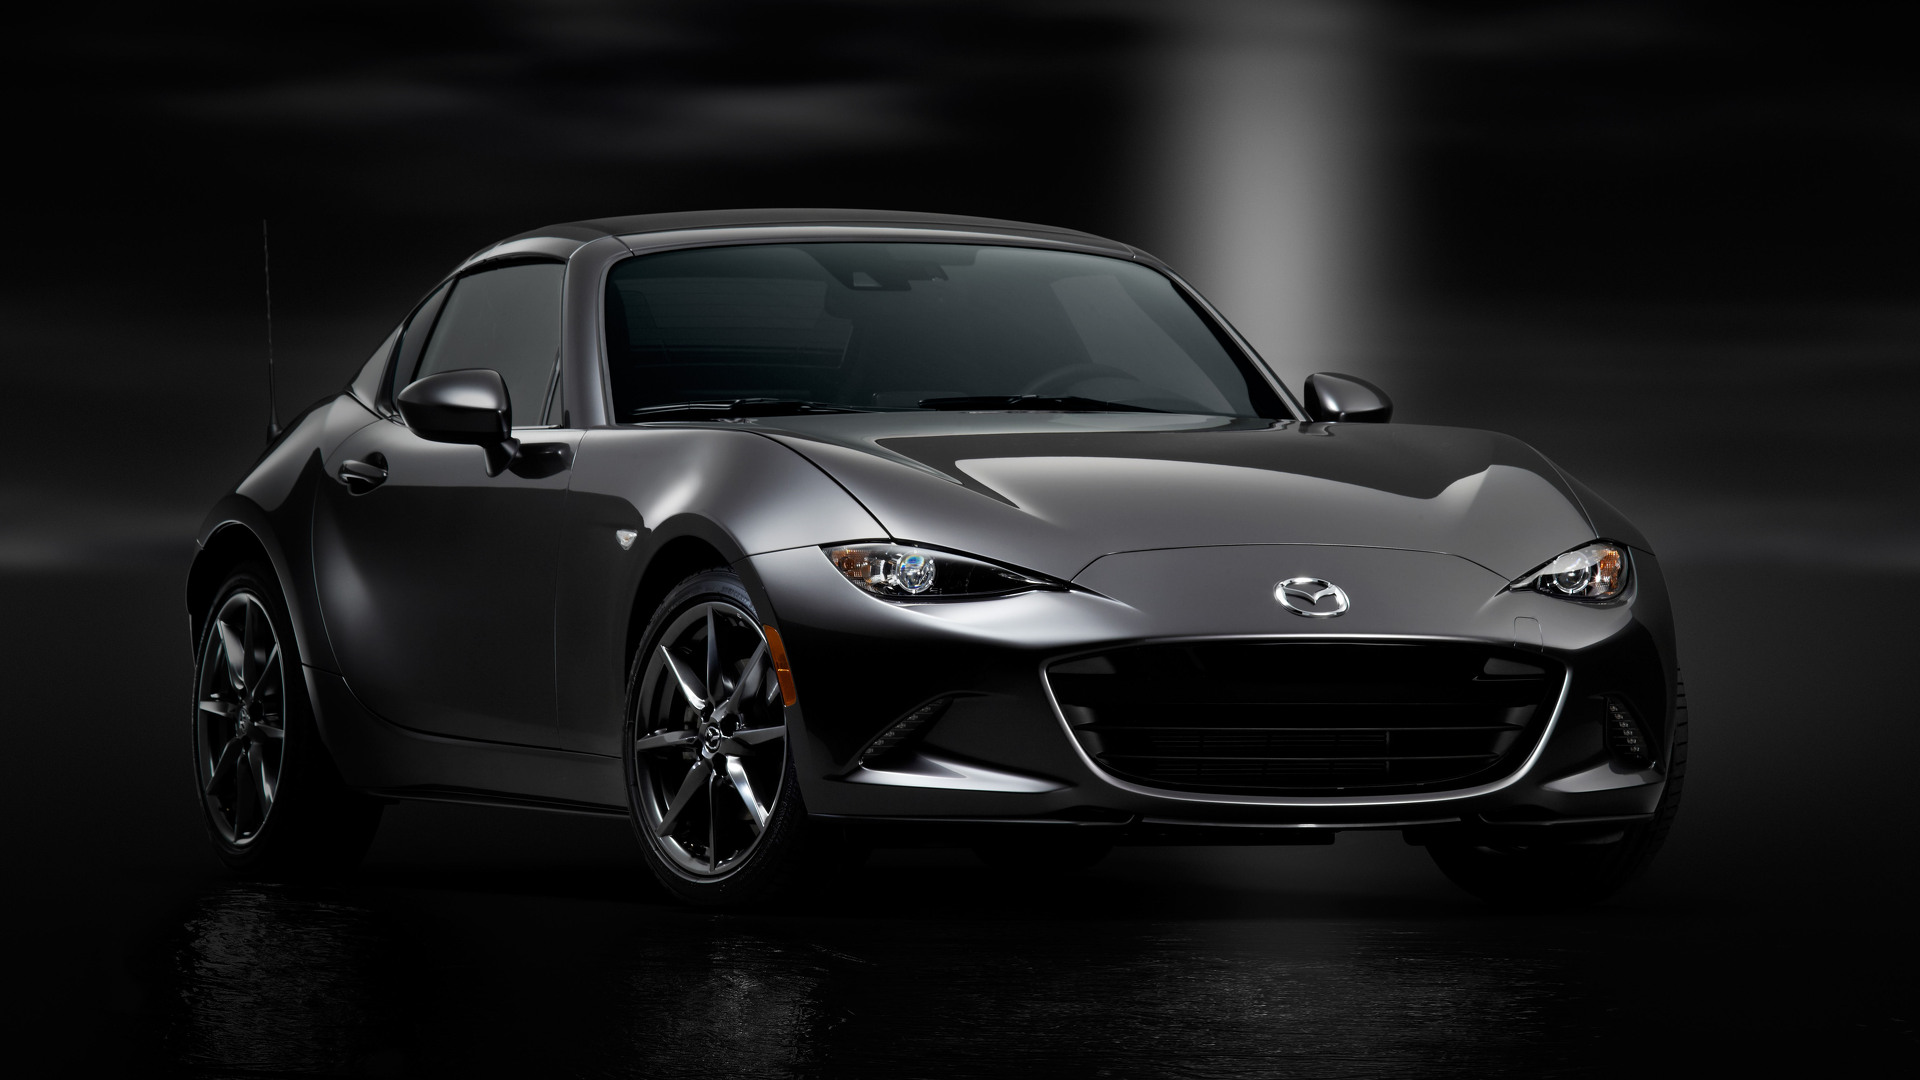 2017 MX-5 Miata RF Launch Edition 1,000-car allocation sold out in first week